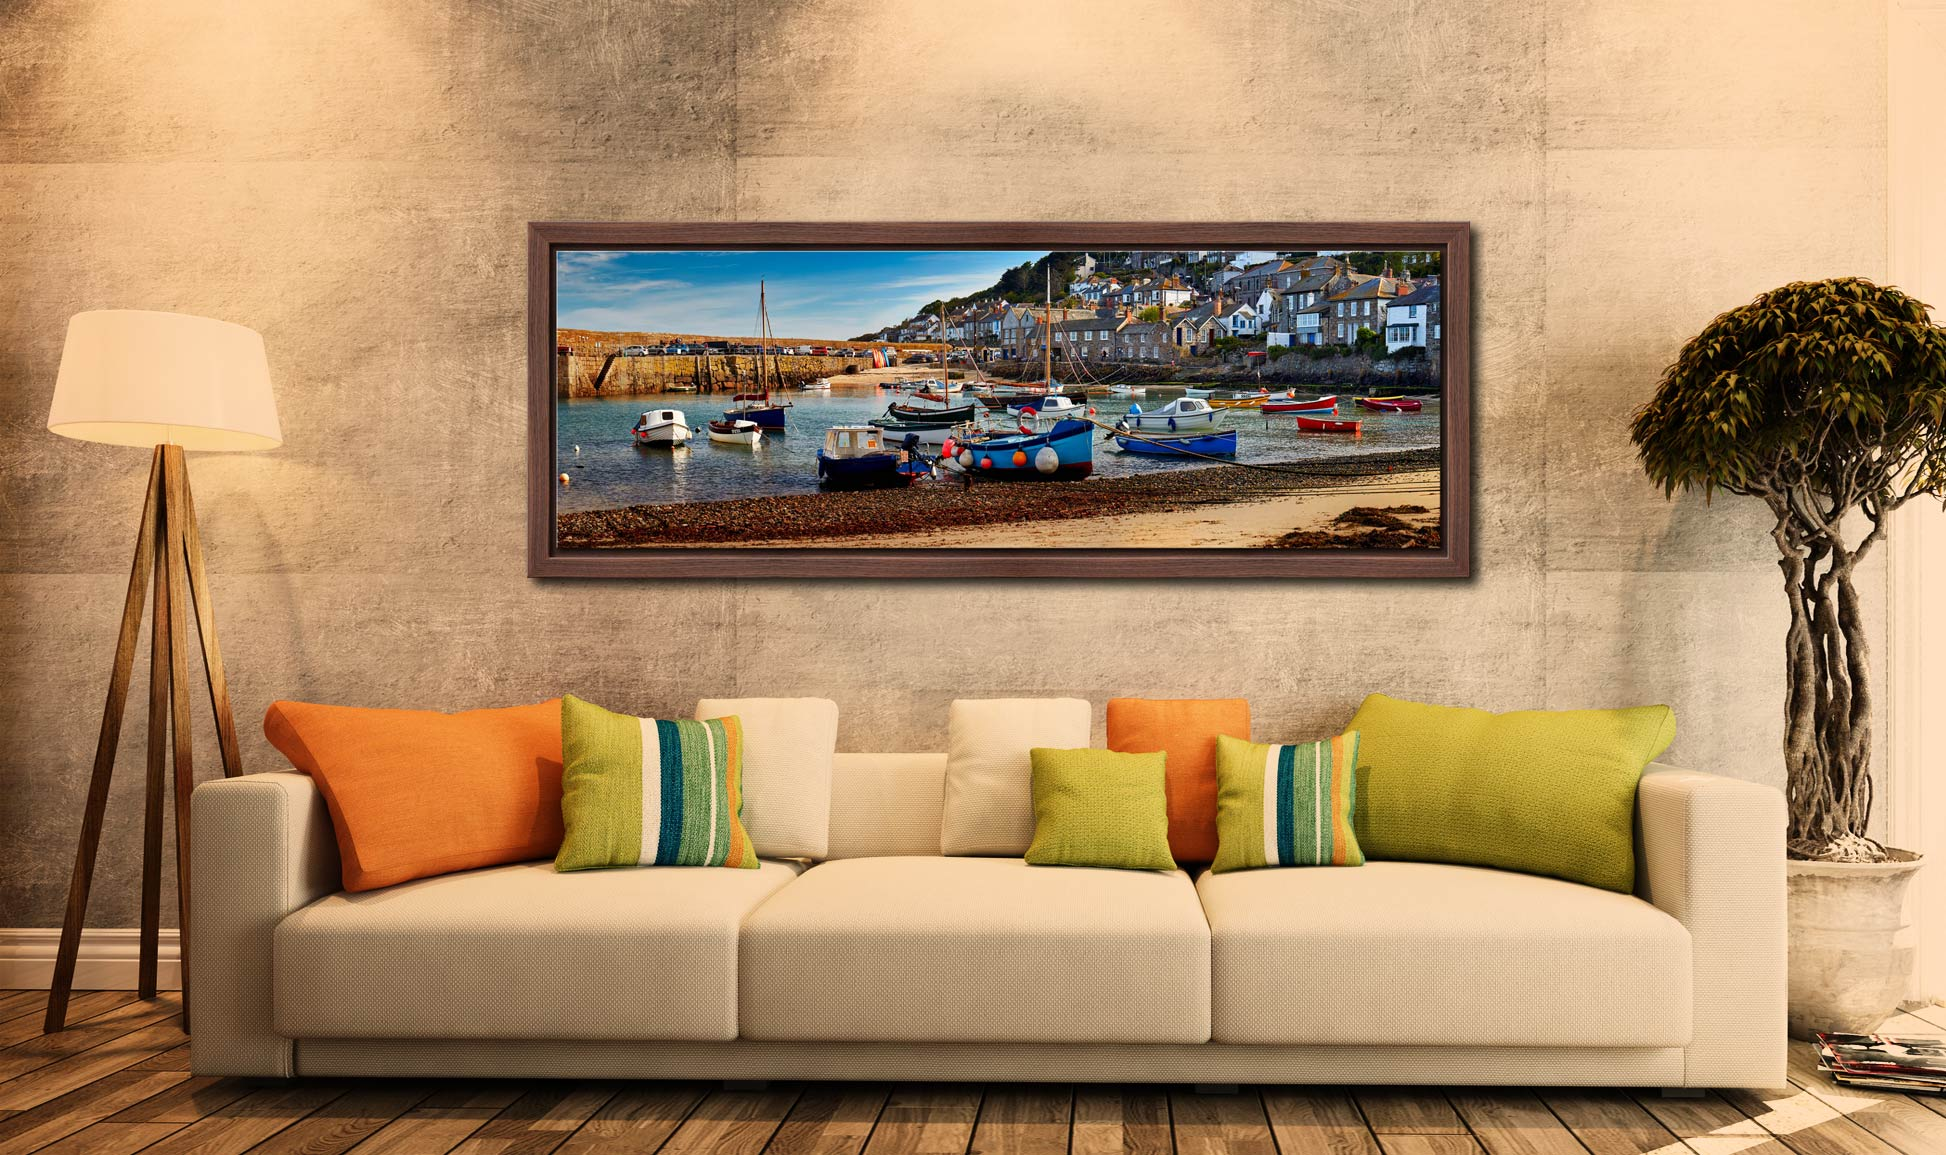 Morning sunlight warming the boats in Mousehole harbour - Walnut floater frame with acrylic glazing on Wall